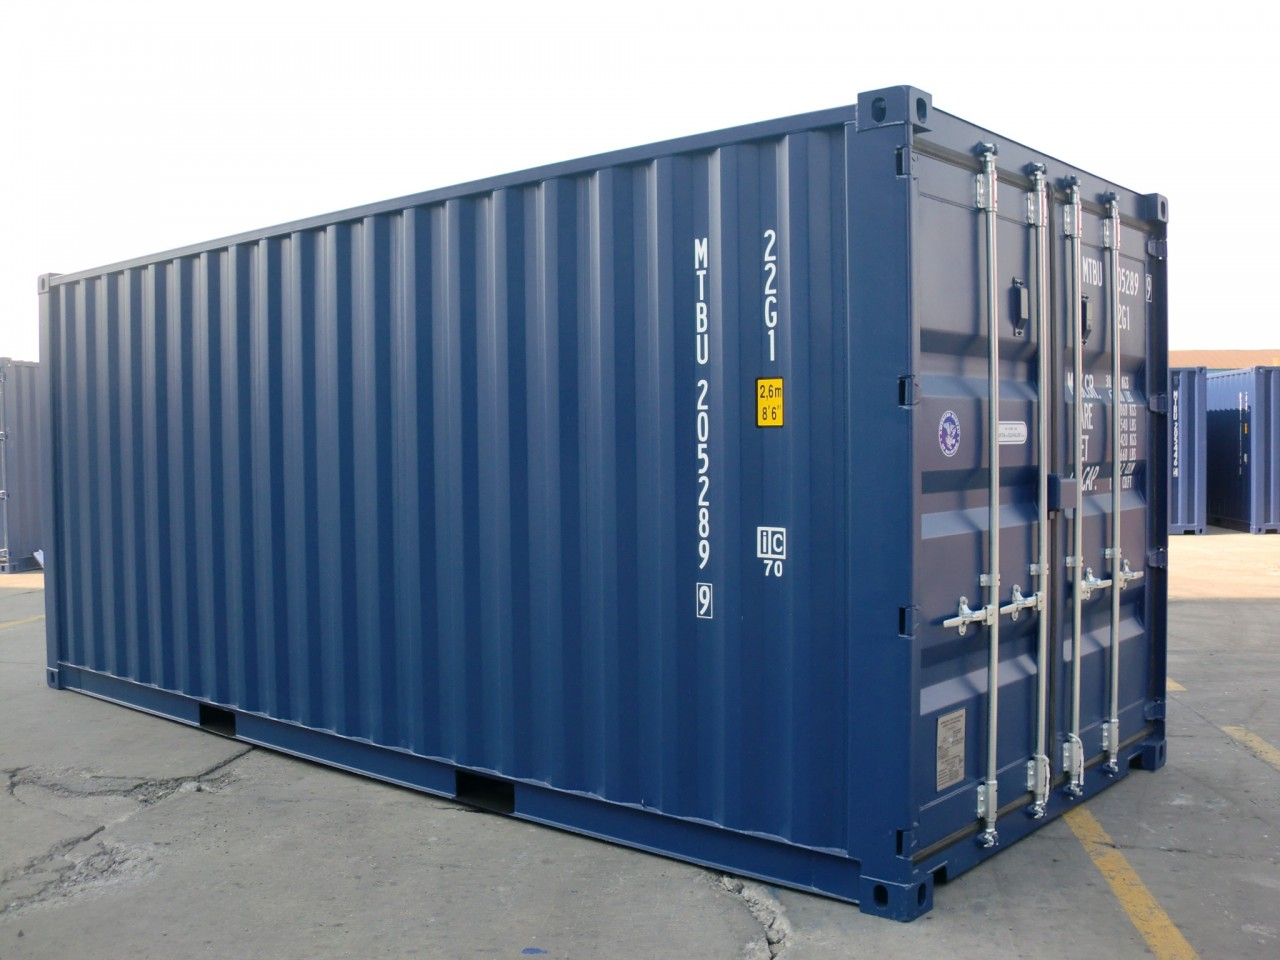 Ny 20ft container